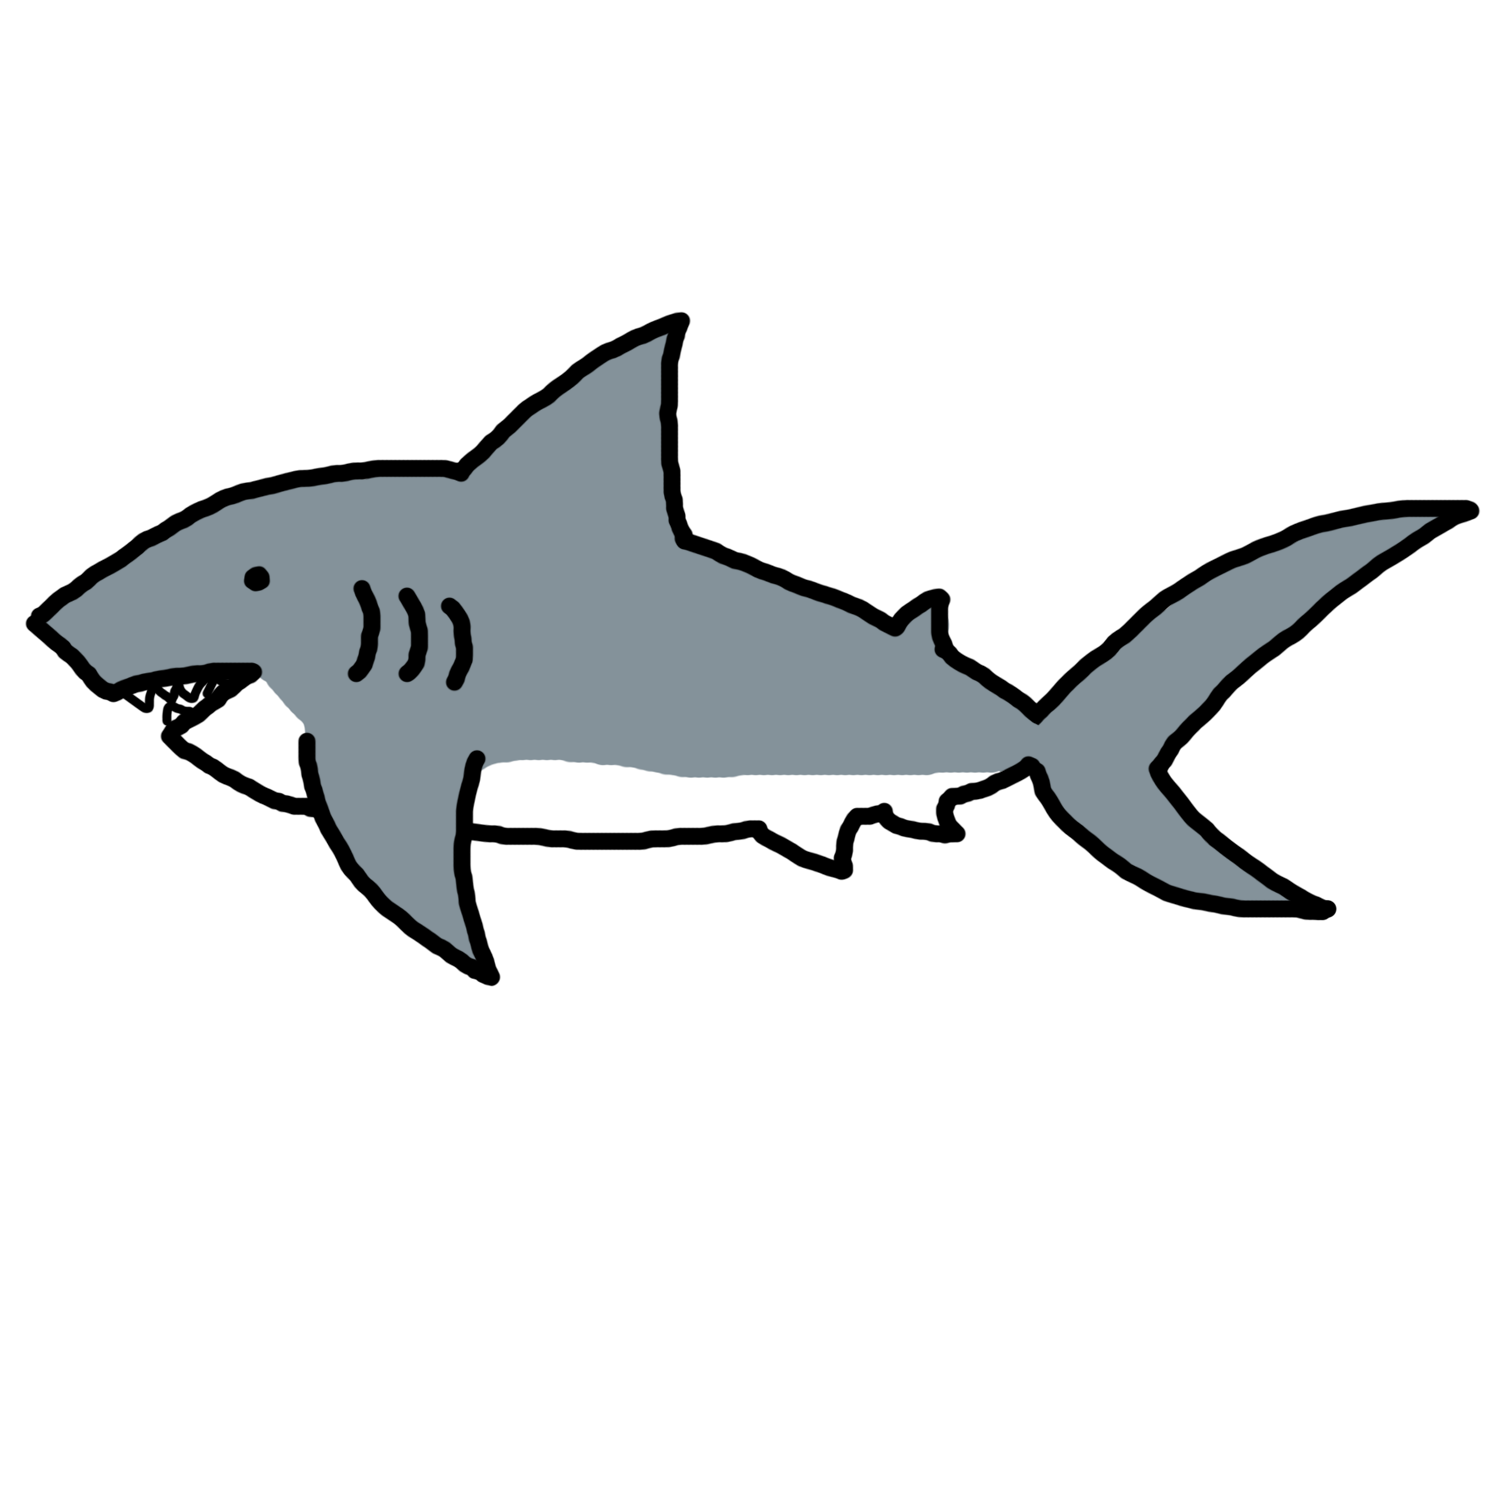 Shark black and white shark clip art black and white free clipart images 3